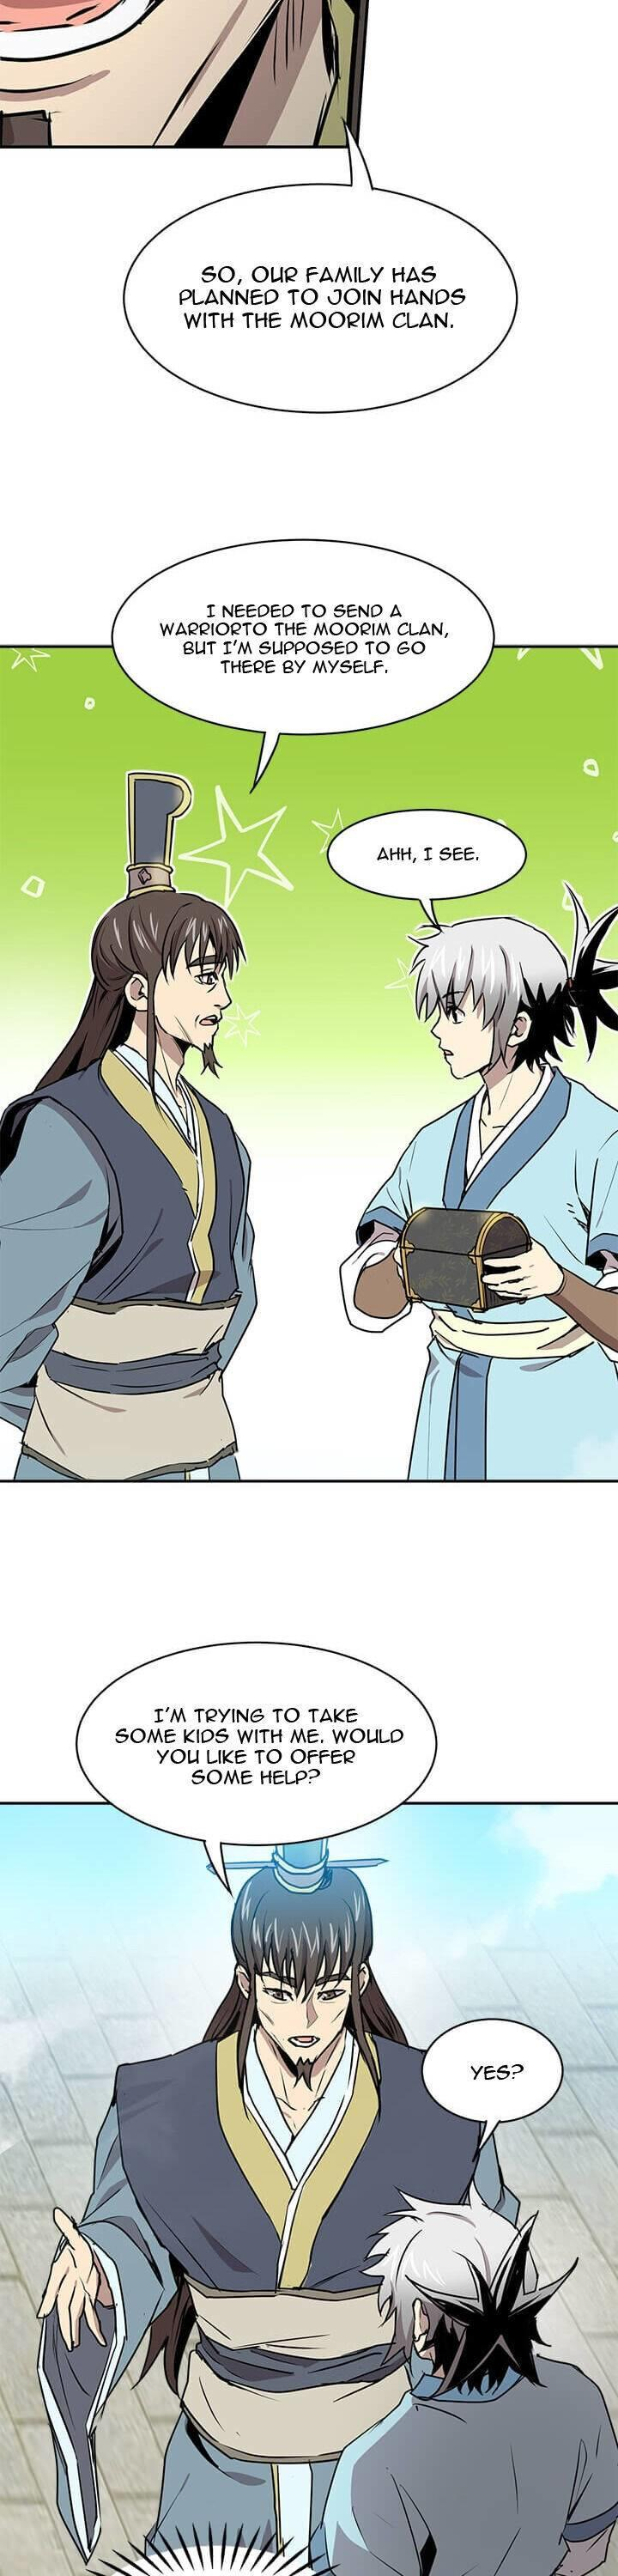 Strongest Fighter Chapter 32 page 4 - Mangakakalots.com